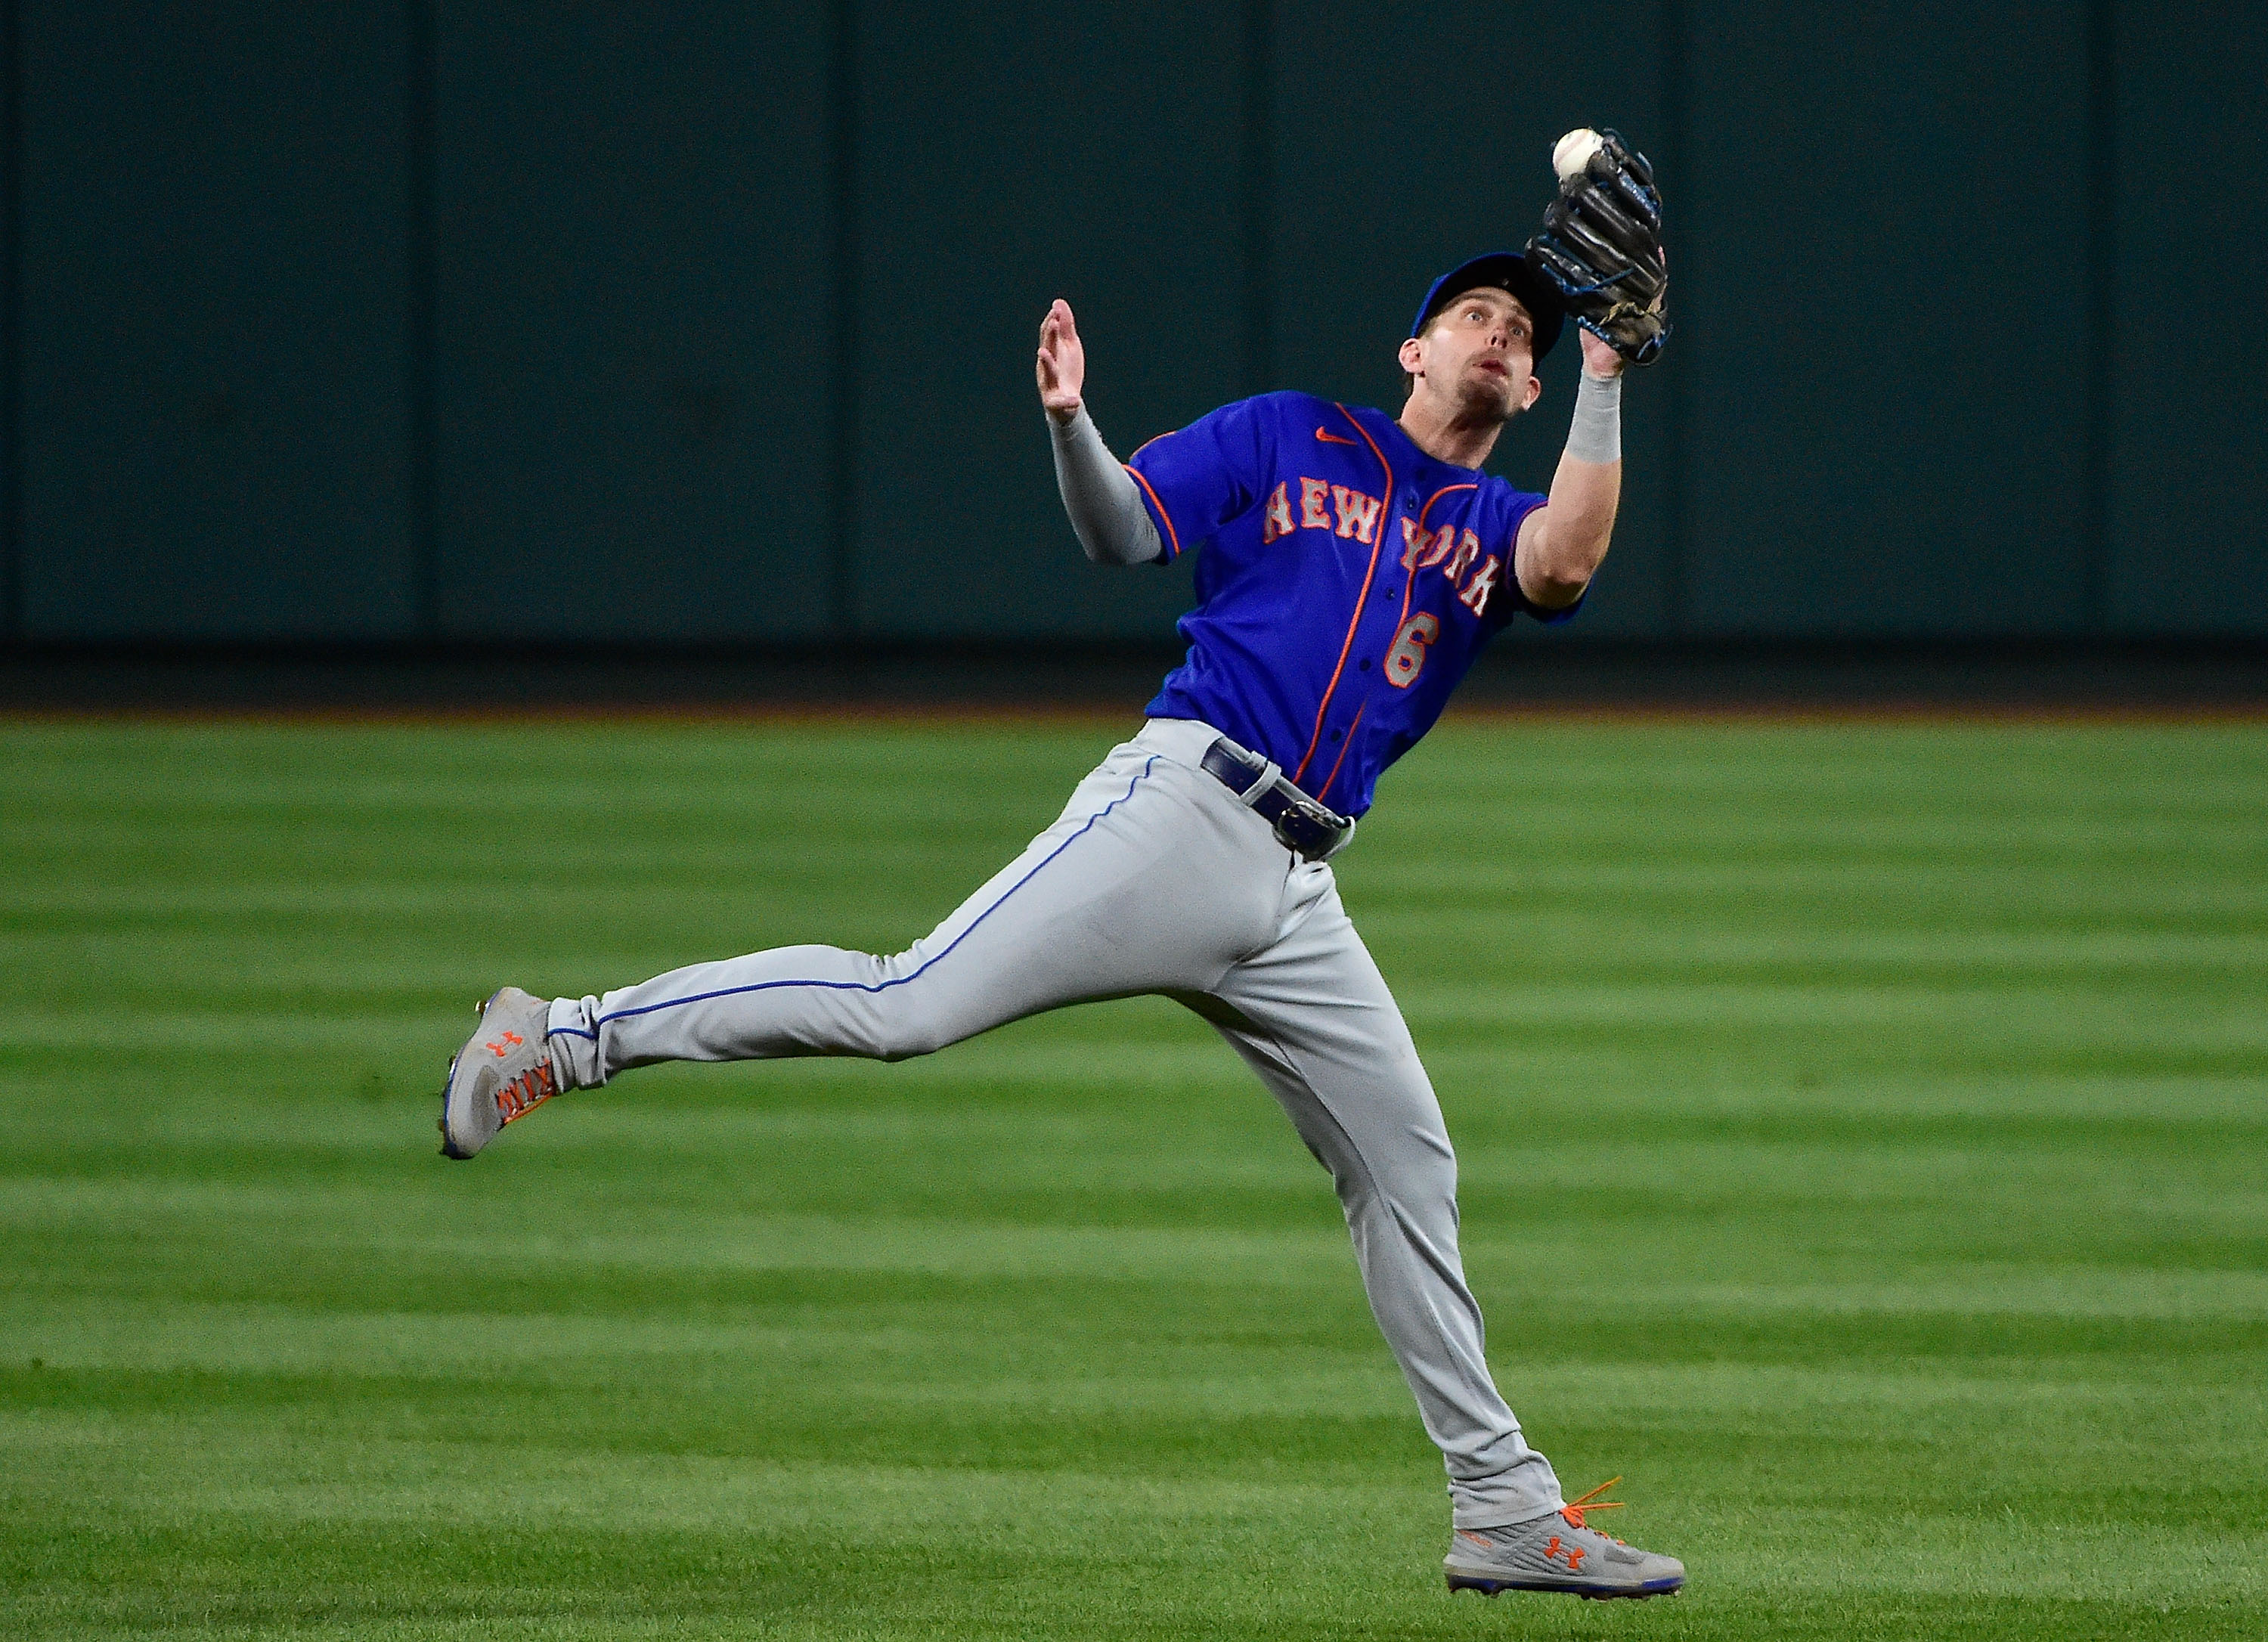 5/6/21 Game Preview: New York Mets at St. Louis Cardinals